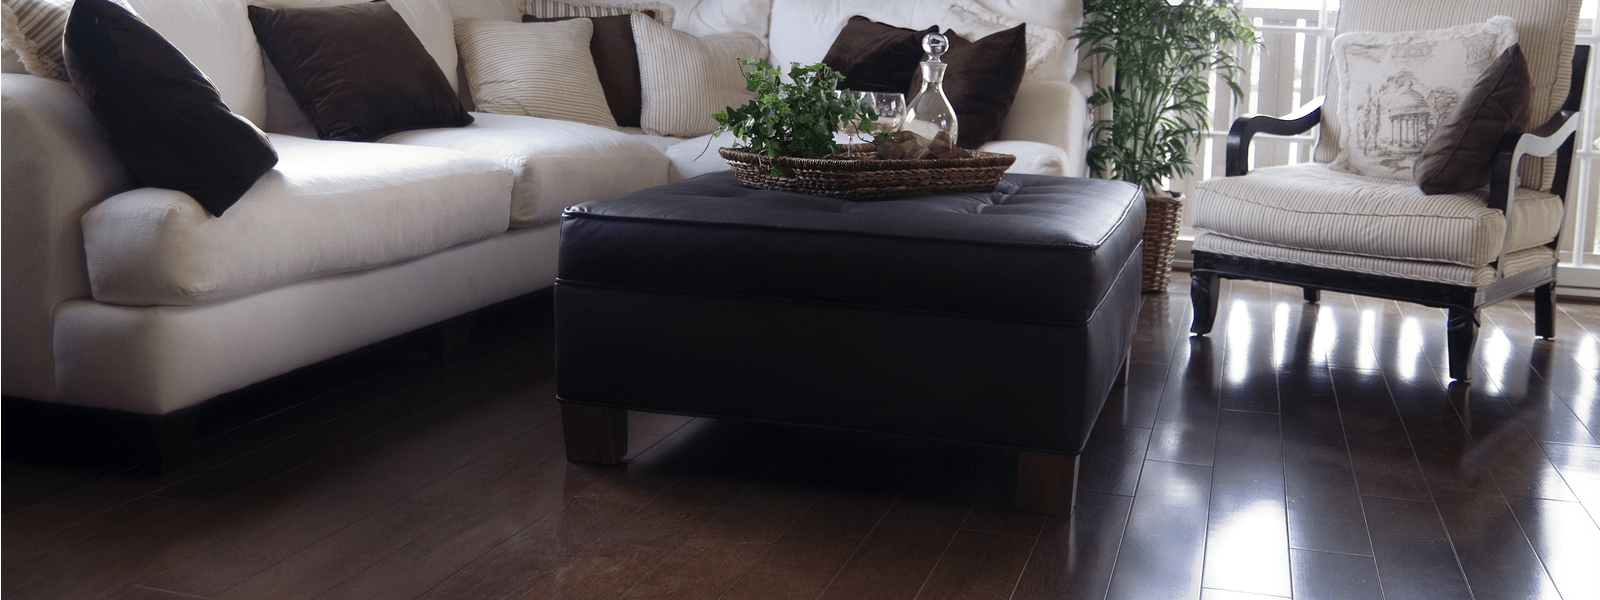 Laminate Floors in Metropolitan Home